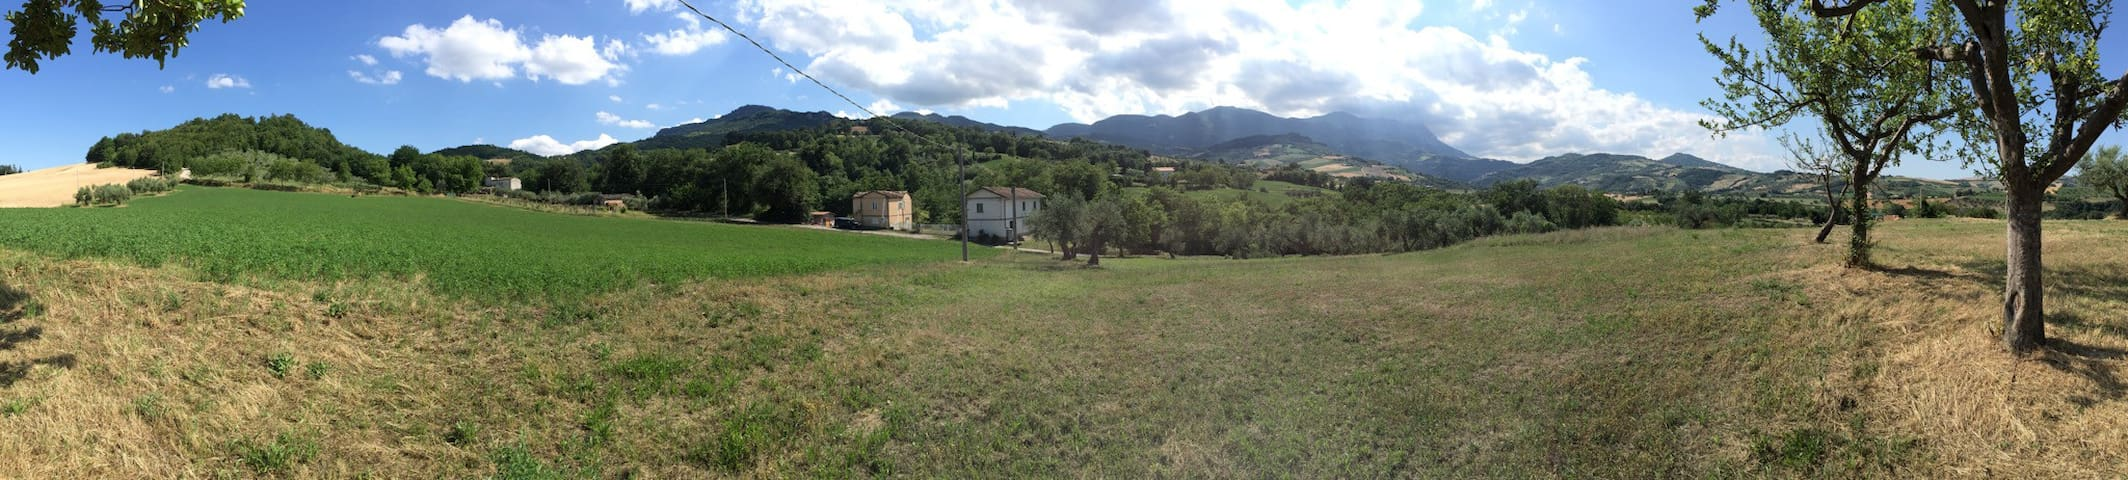 Family Home in Abruzzo Countryside - Montebello di Bertona - 단독주택